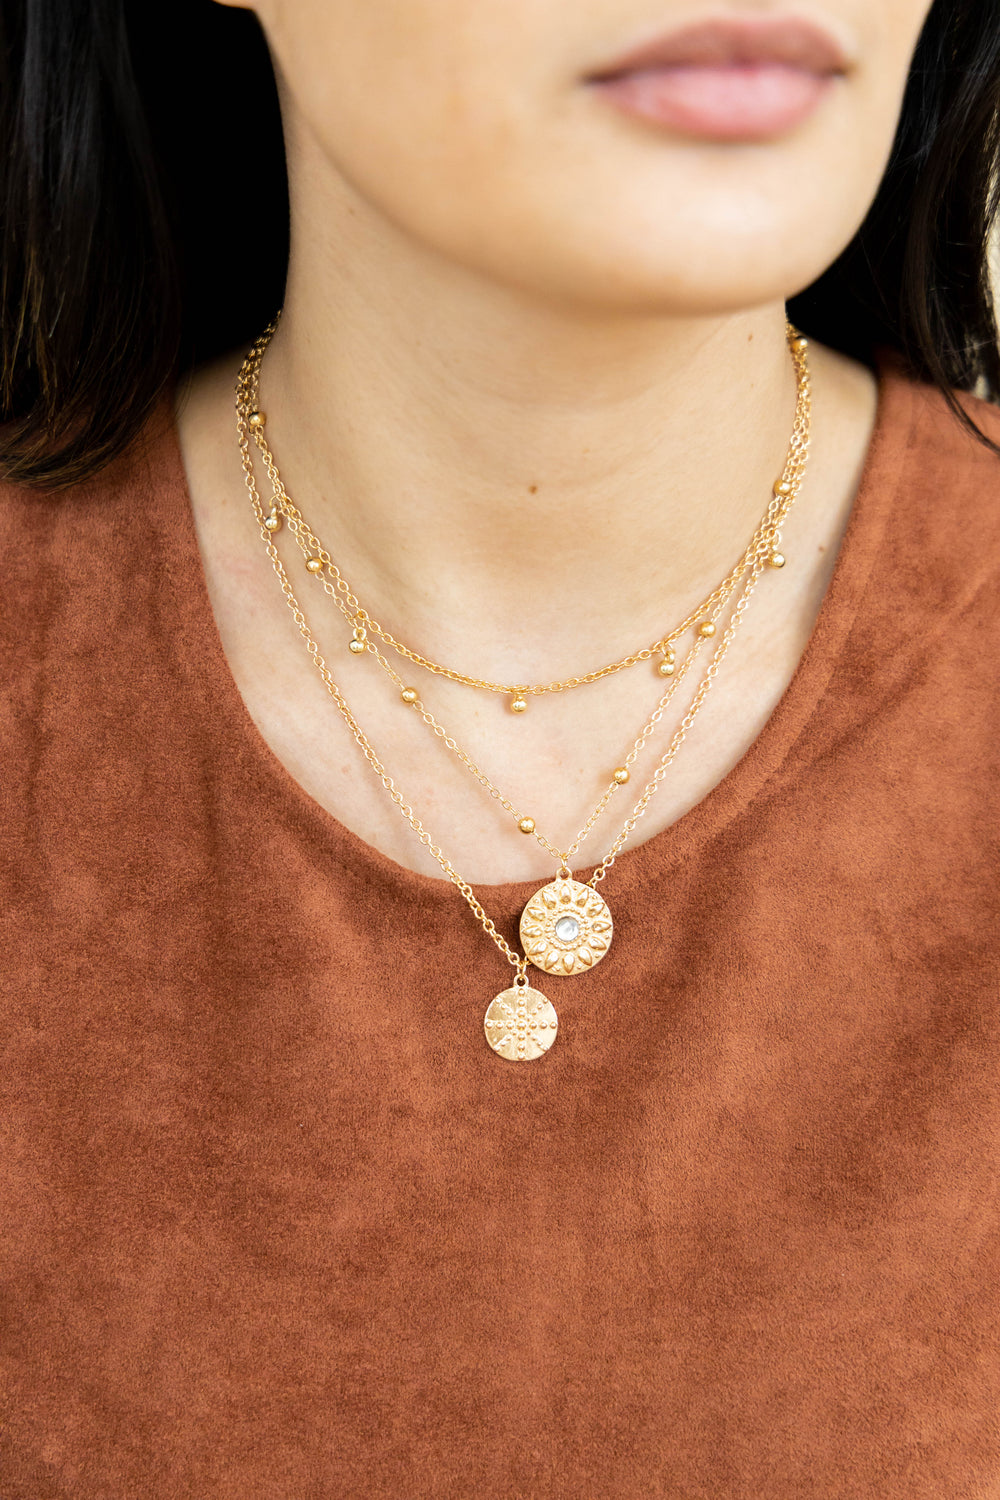 Gold layered necklace with pendants on model